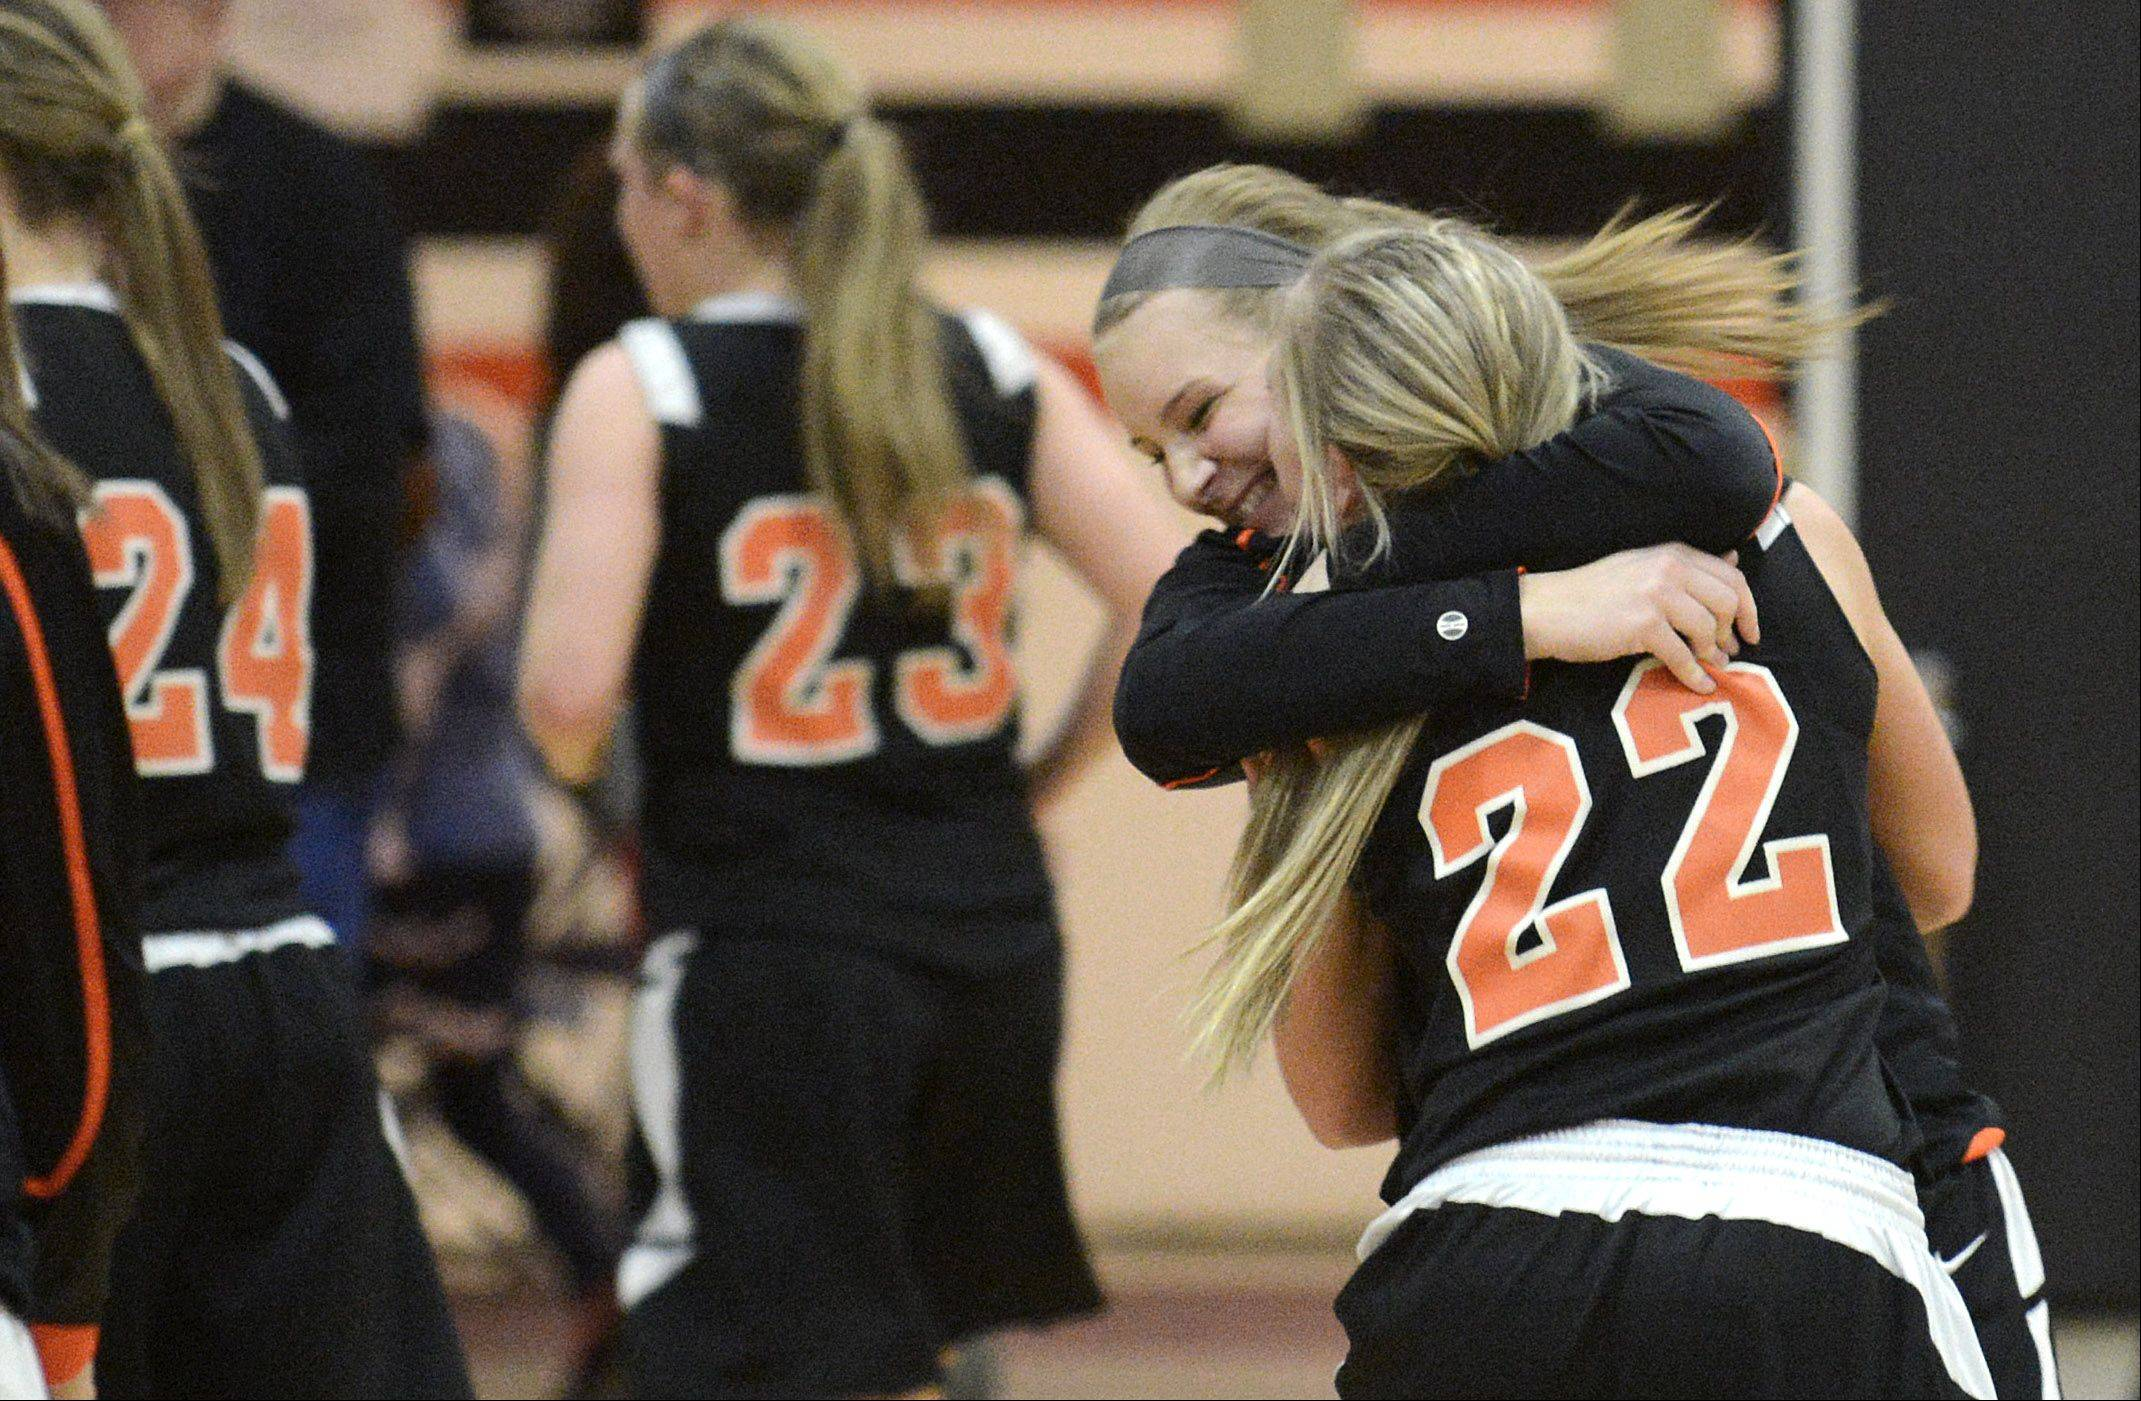 St. Charles East's Marlena Detzel embraces teammate Anna Bartels, 22, after their win over Batavia in the Class 4A regional game Tuesday.